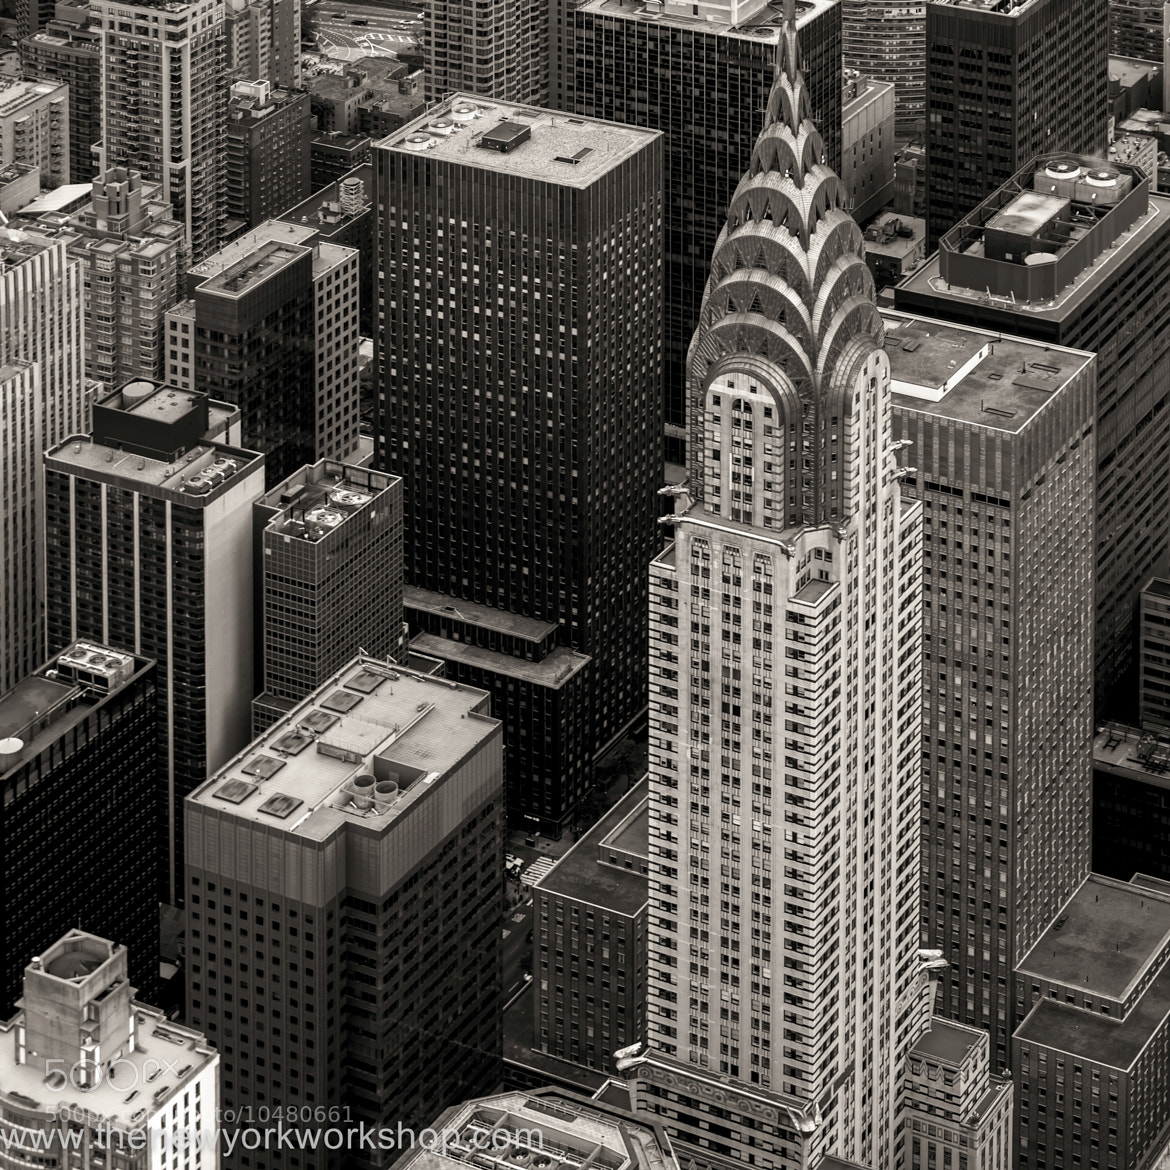 Photograph Manhattan heartbeat by regis boileau on 500px